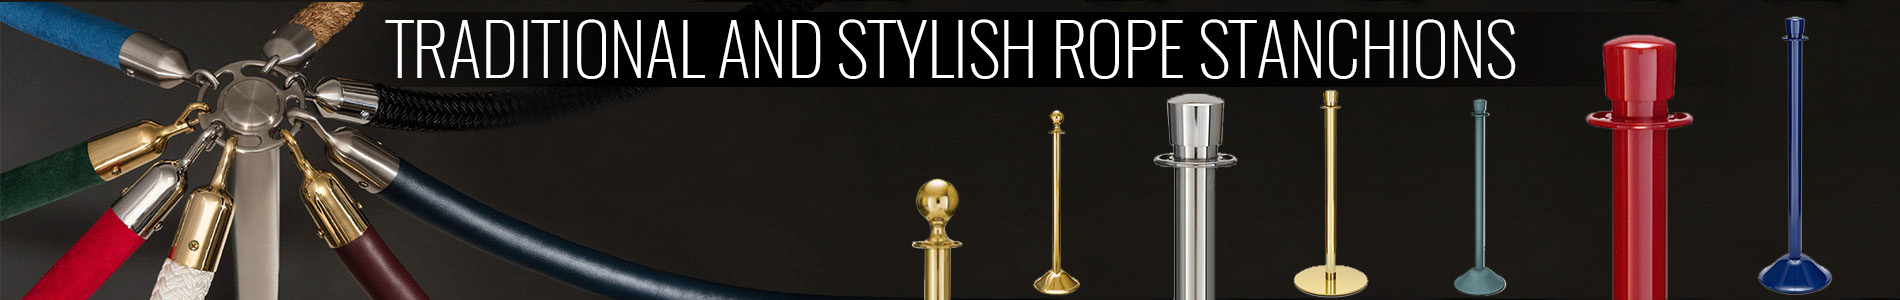 traditional-and-stylish-rope-stanchions